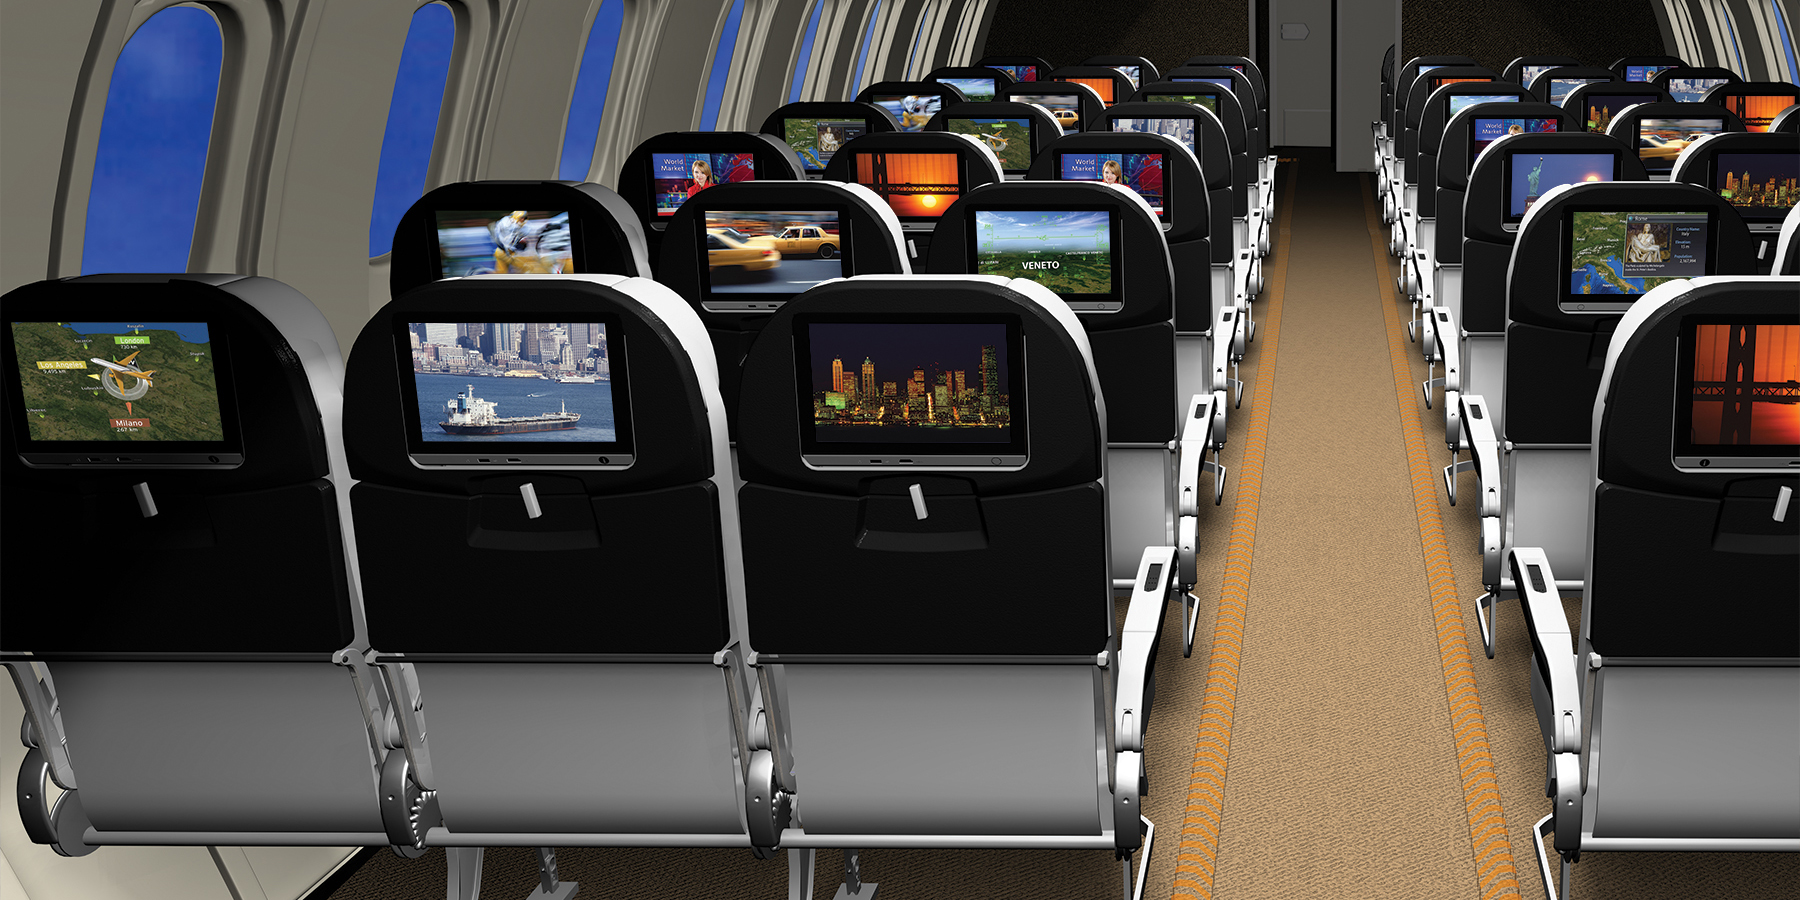 Rockwell Collins PAVES seat centric solution gives B/E Aerospace something they have needed. Image: Rockwell Collins